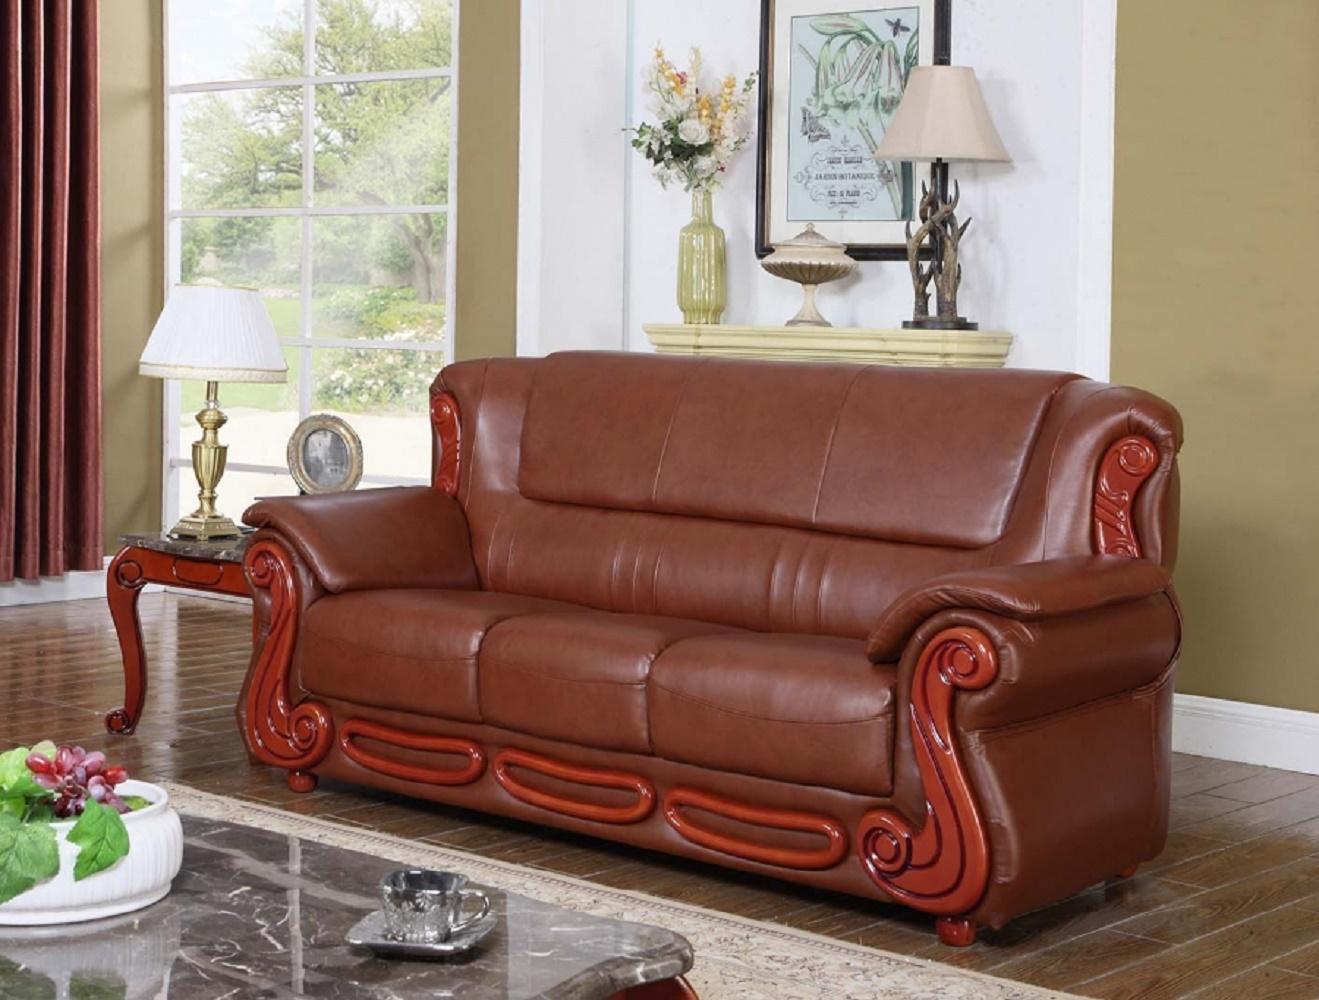 Meridian Brown Bonded Leather Living Room Sofa Rich Cherry Traditional  Design